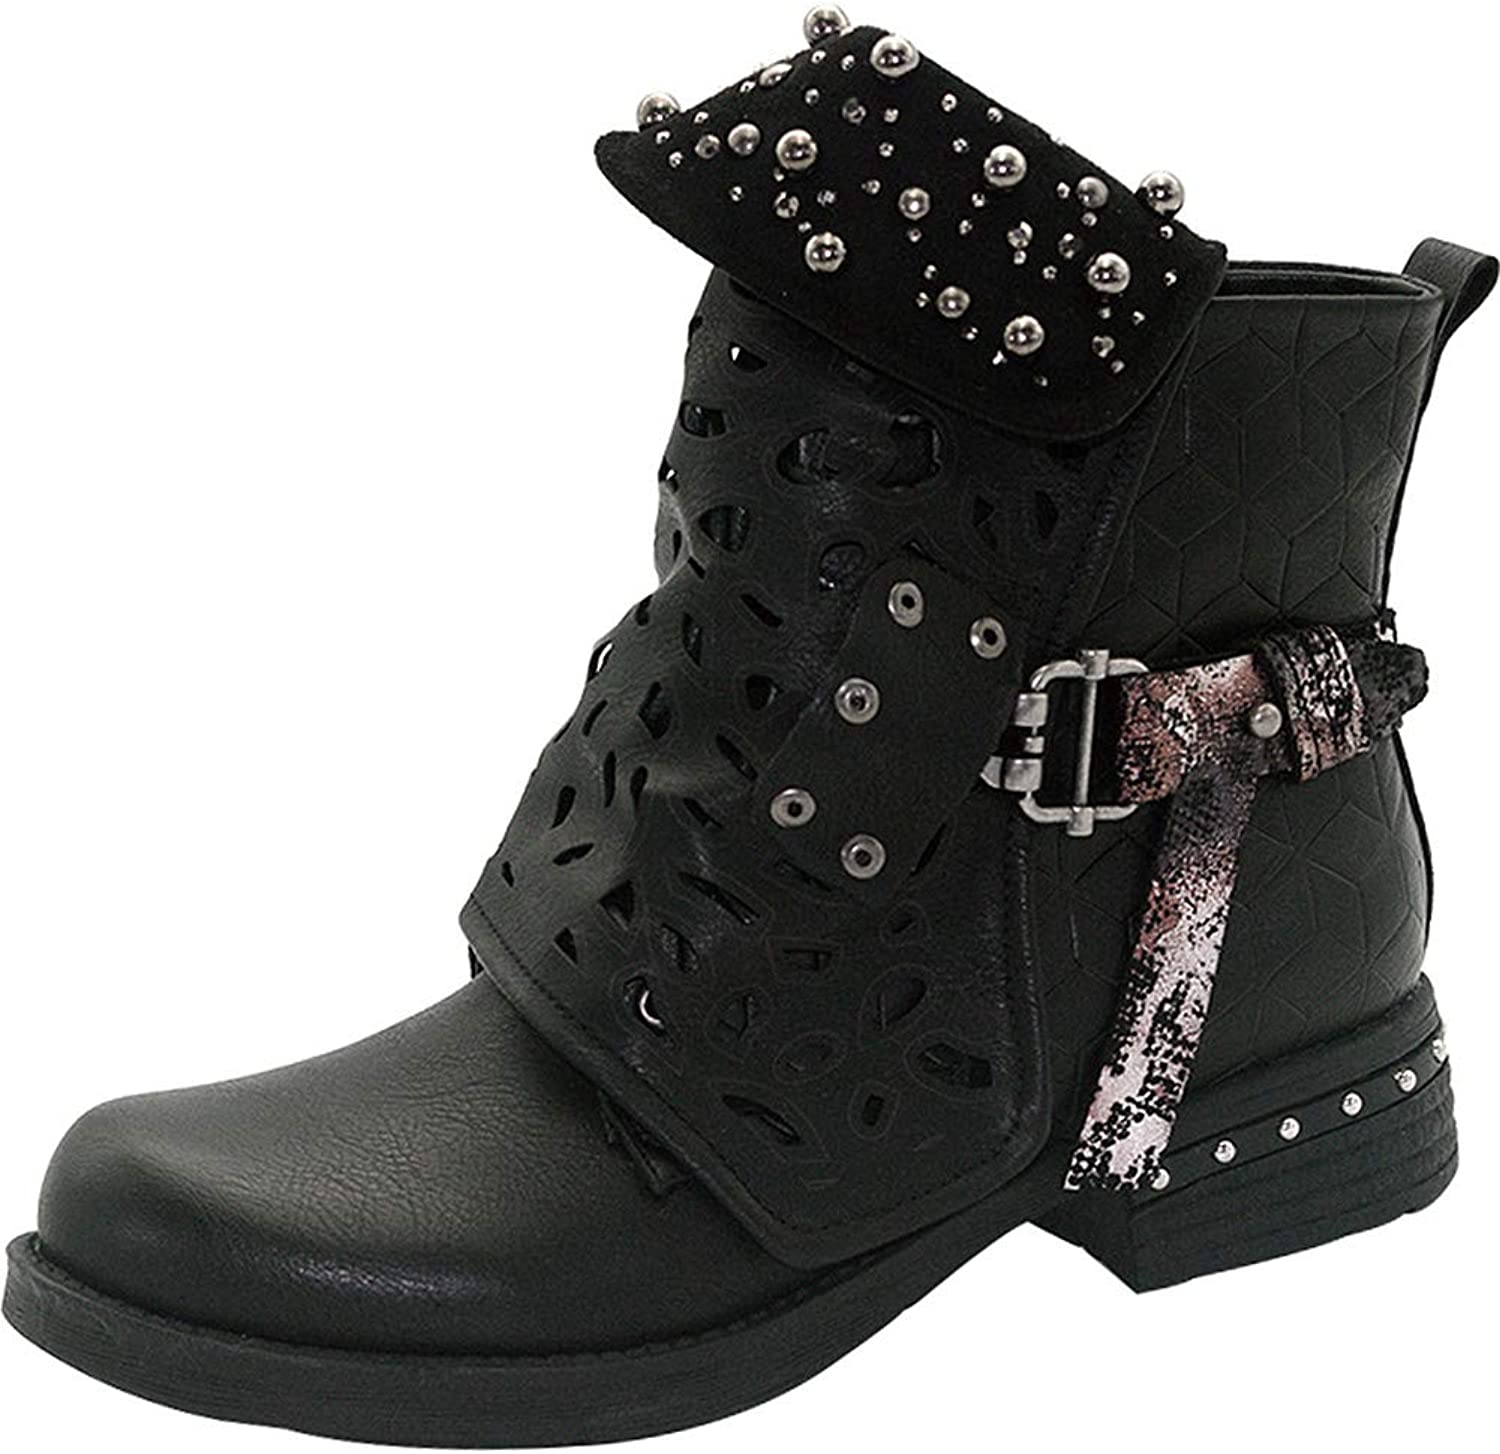 Sekesin Women Fashion Studded Punk Boots Vintage Leather Buckle Martin Boots Carved Biker Western Booties Zipper